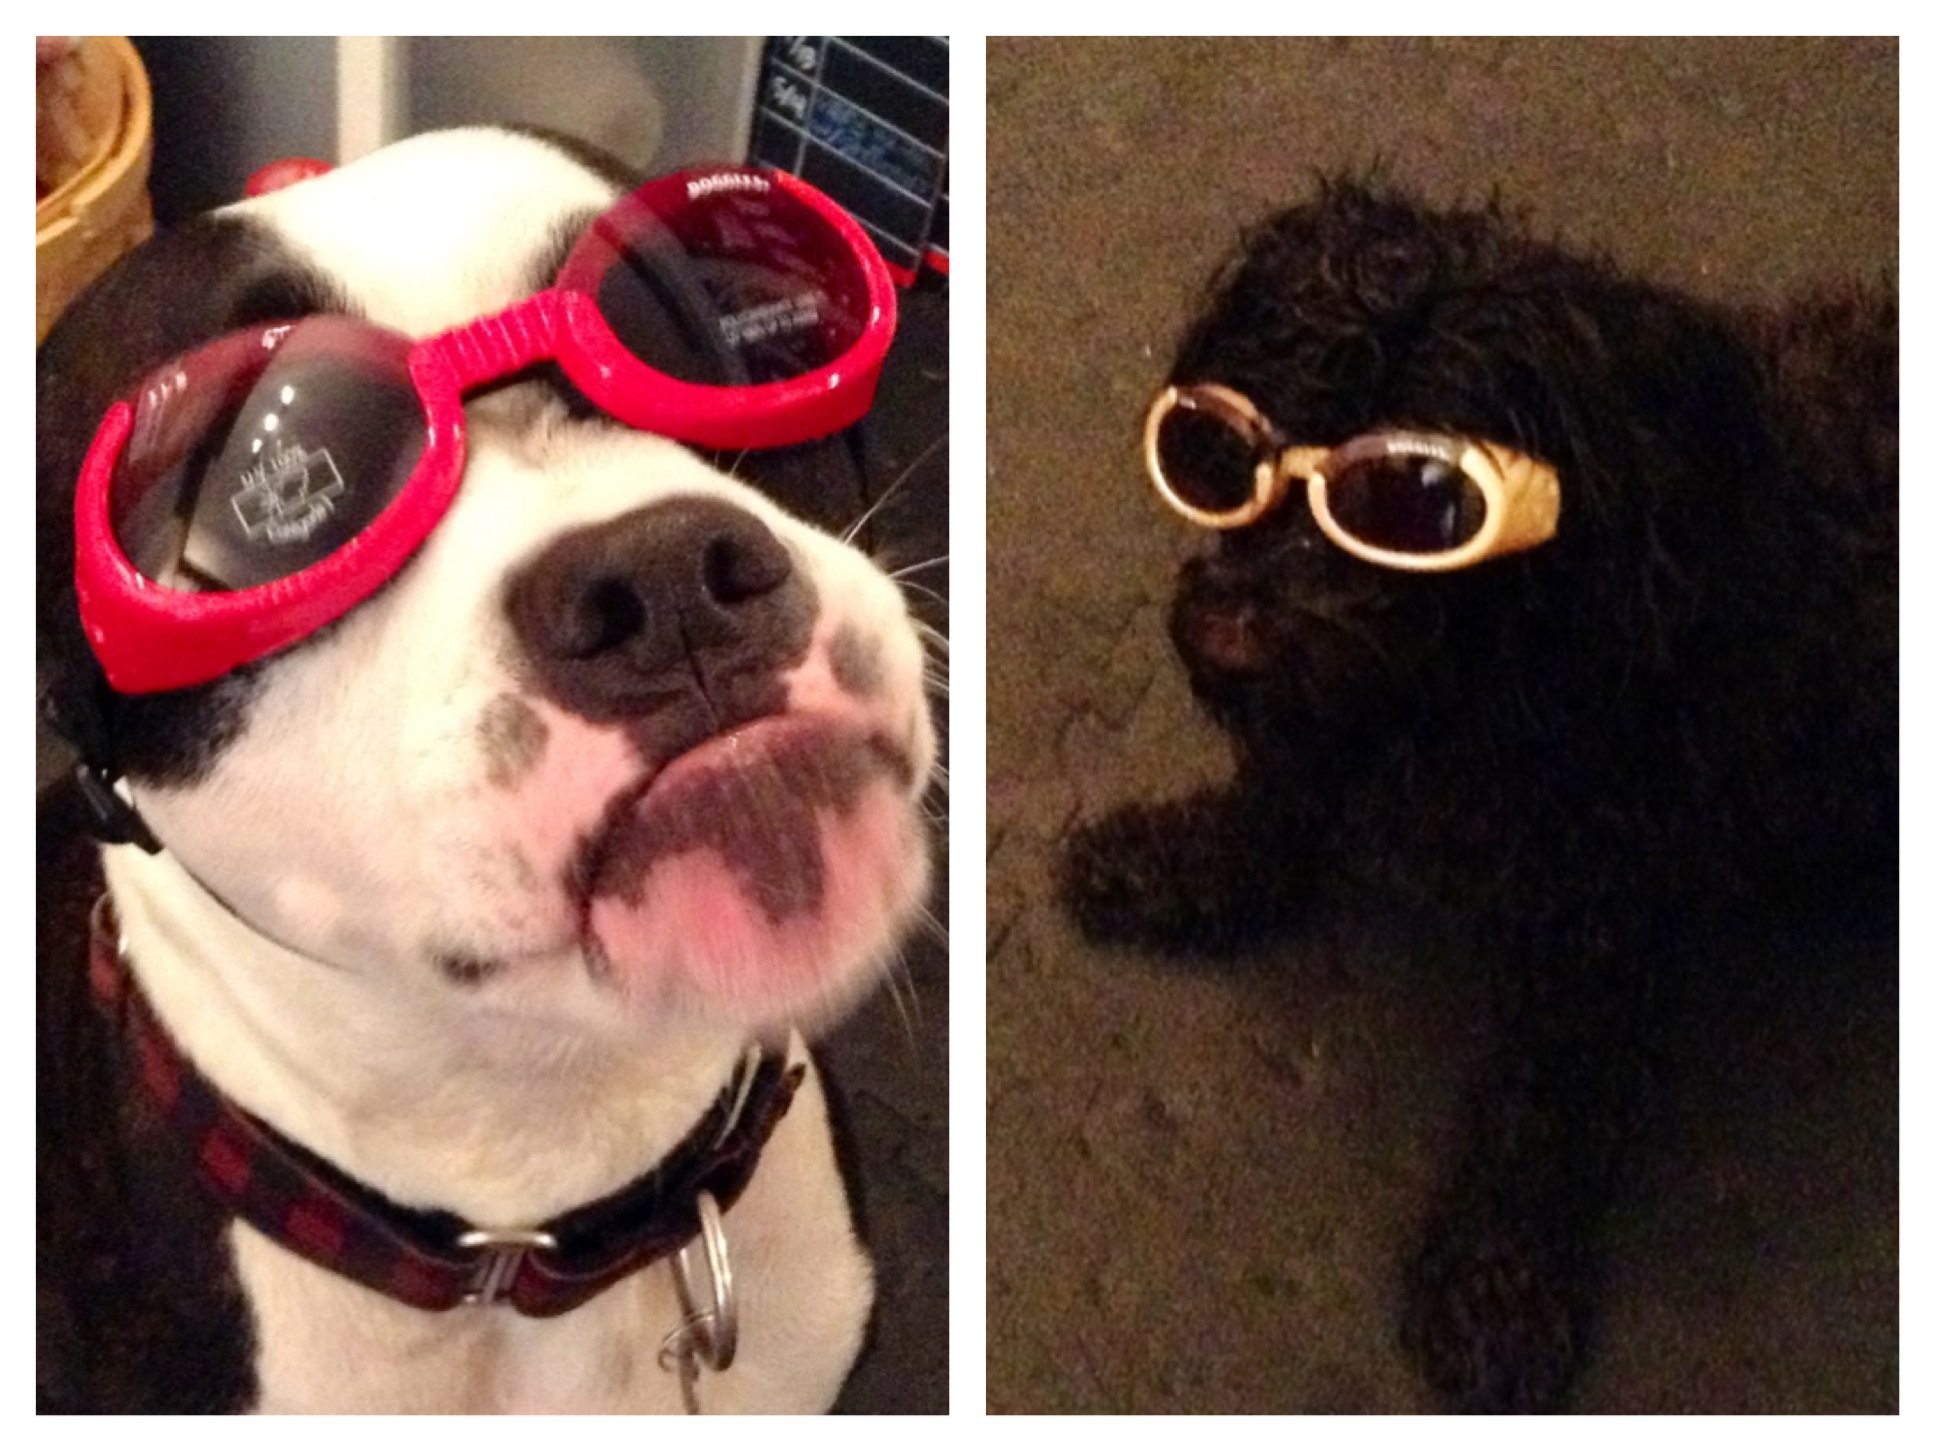 c30c95767c9 04 Jun Why your dog might actually benefit from a pair of sunglasses